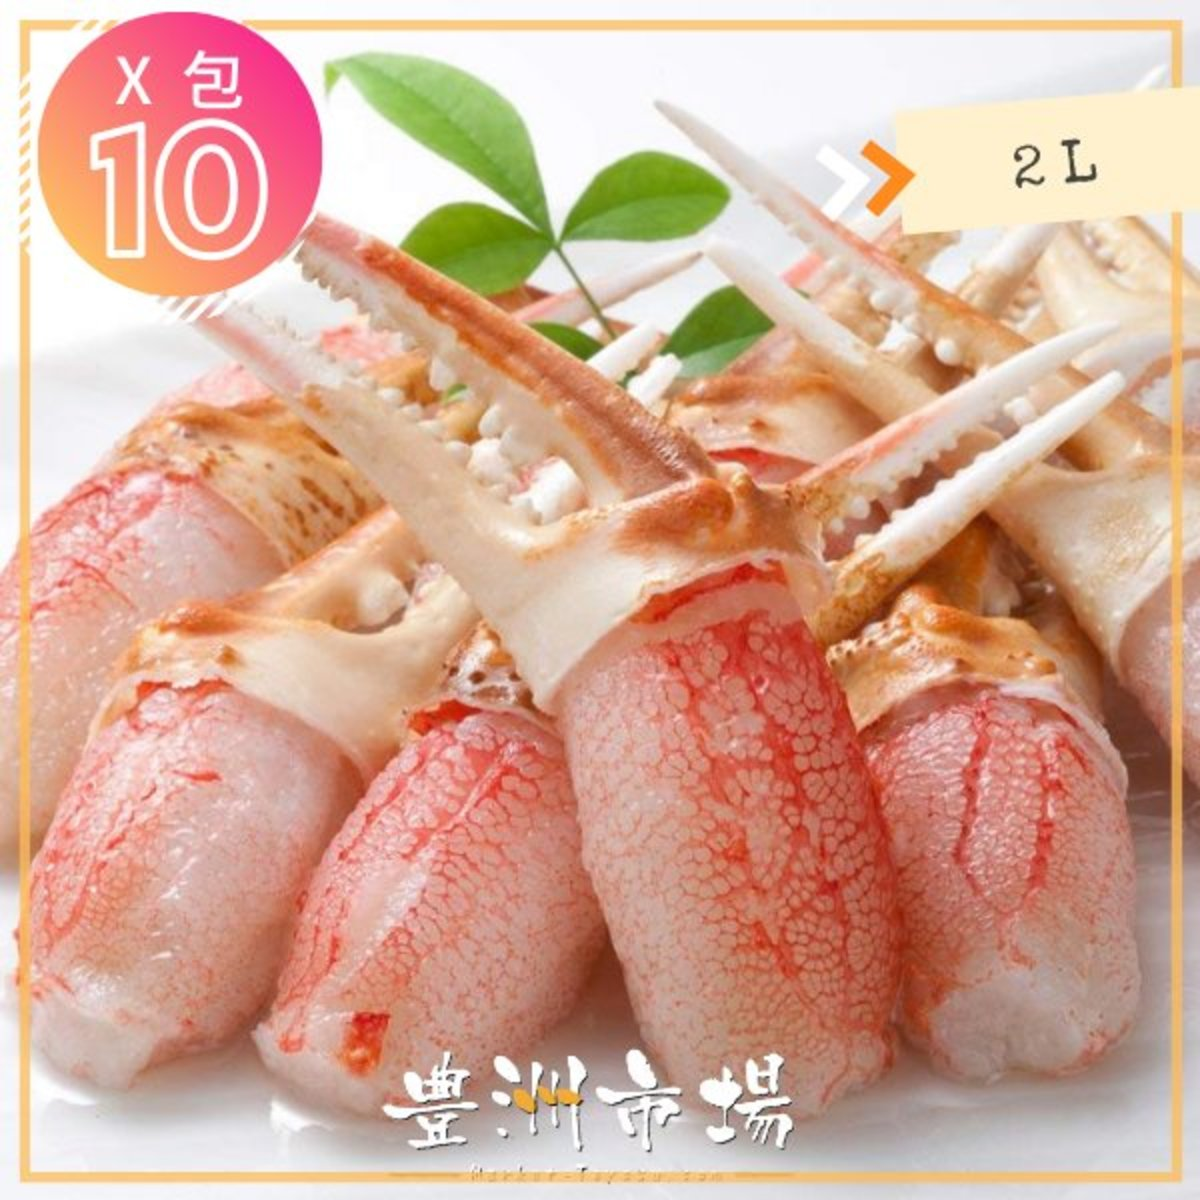 10boxes Japan Snow Crab Claw Cooked(2L)